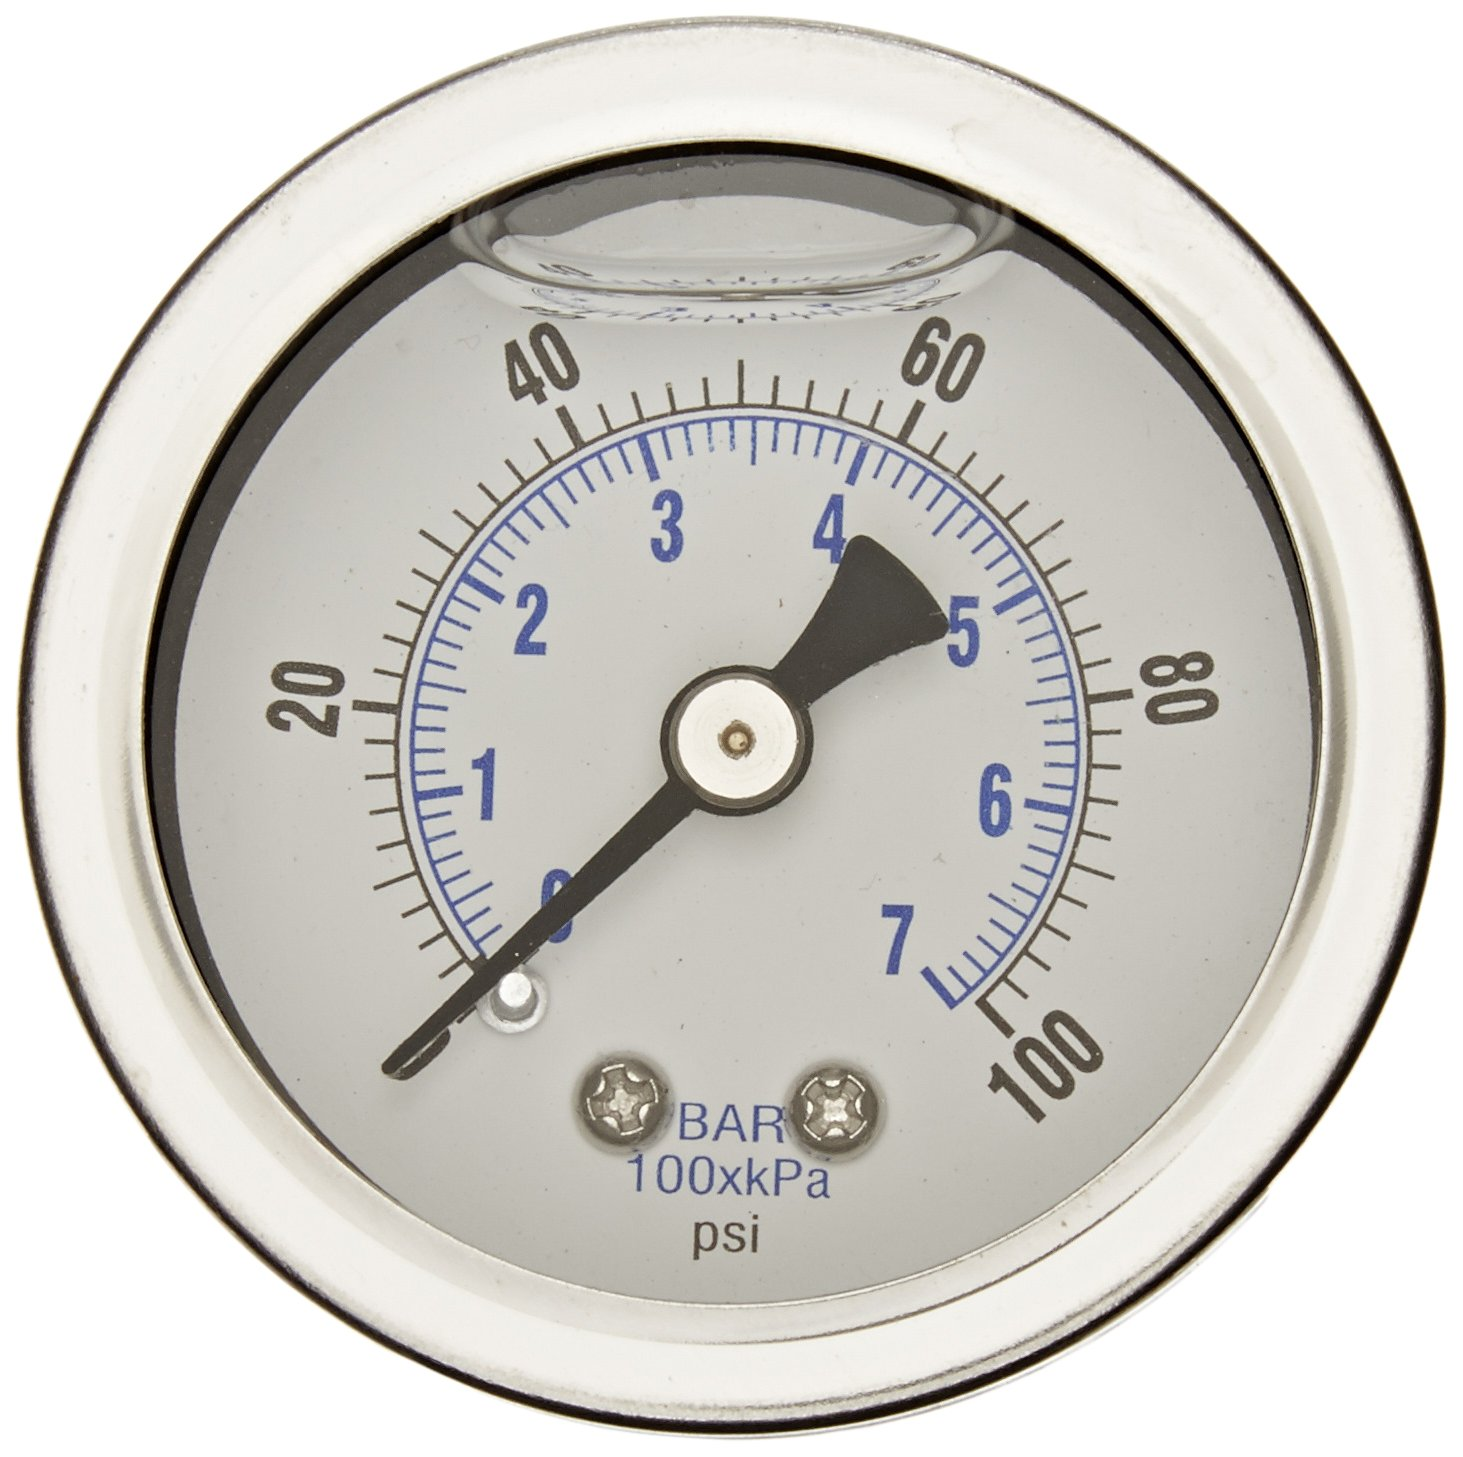 PIC Gauge 202L 158E 1.5 Dial 0 100 psi Range 1 8 Male NPT Connection Size Center Back Mount Glycerine Filled Pressure Gauge with a Stainless Steel Case Brass Internals Stainless Steel Bezel and Polycarbonate Lens